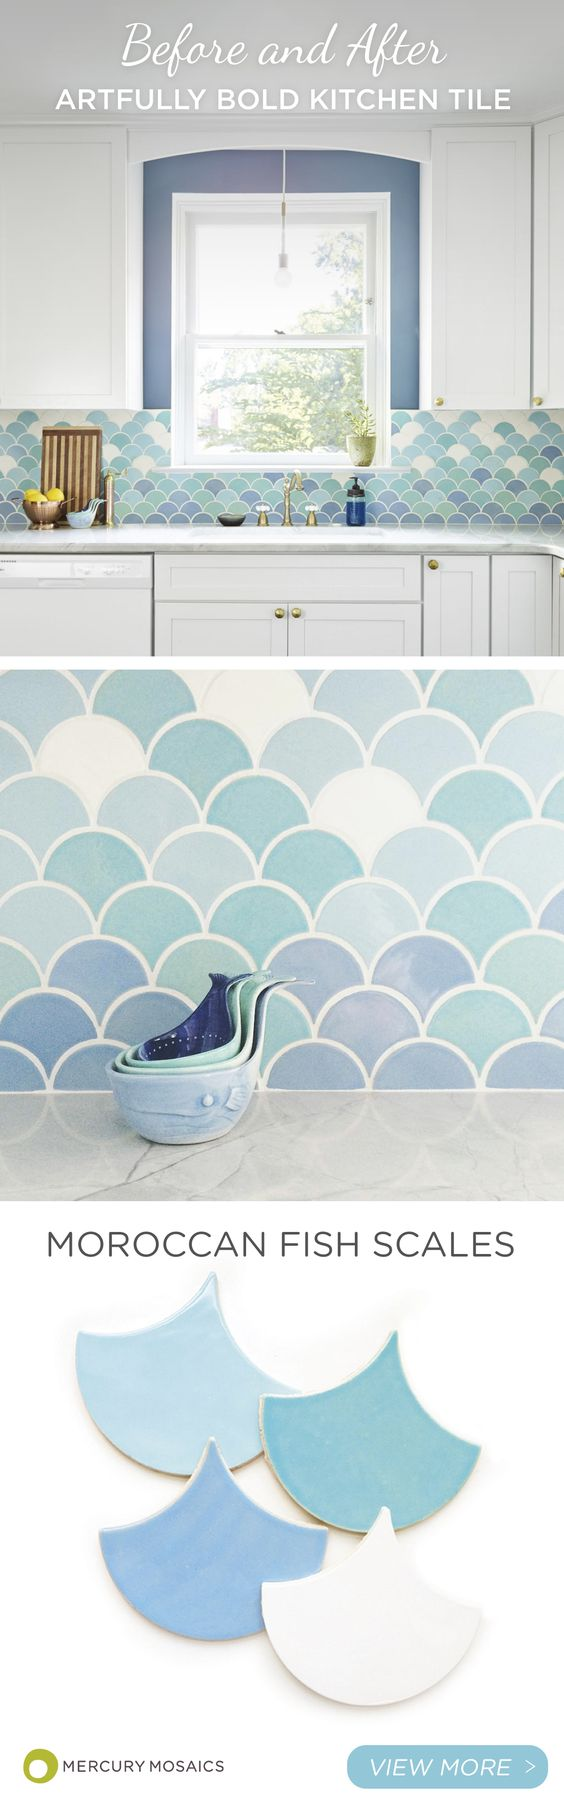 Moroccan Fish Scales In Light Blues Against White Kithchen Bachsplash.